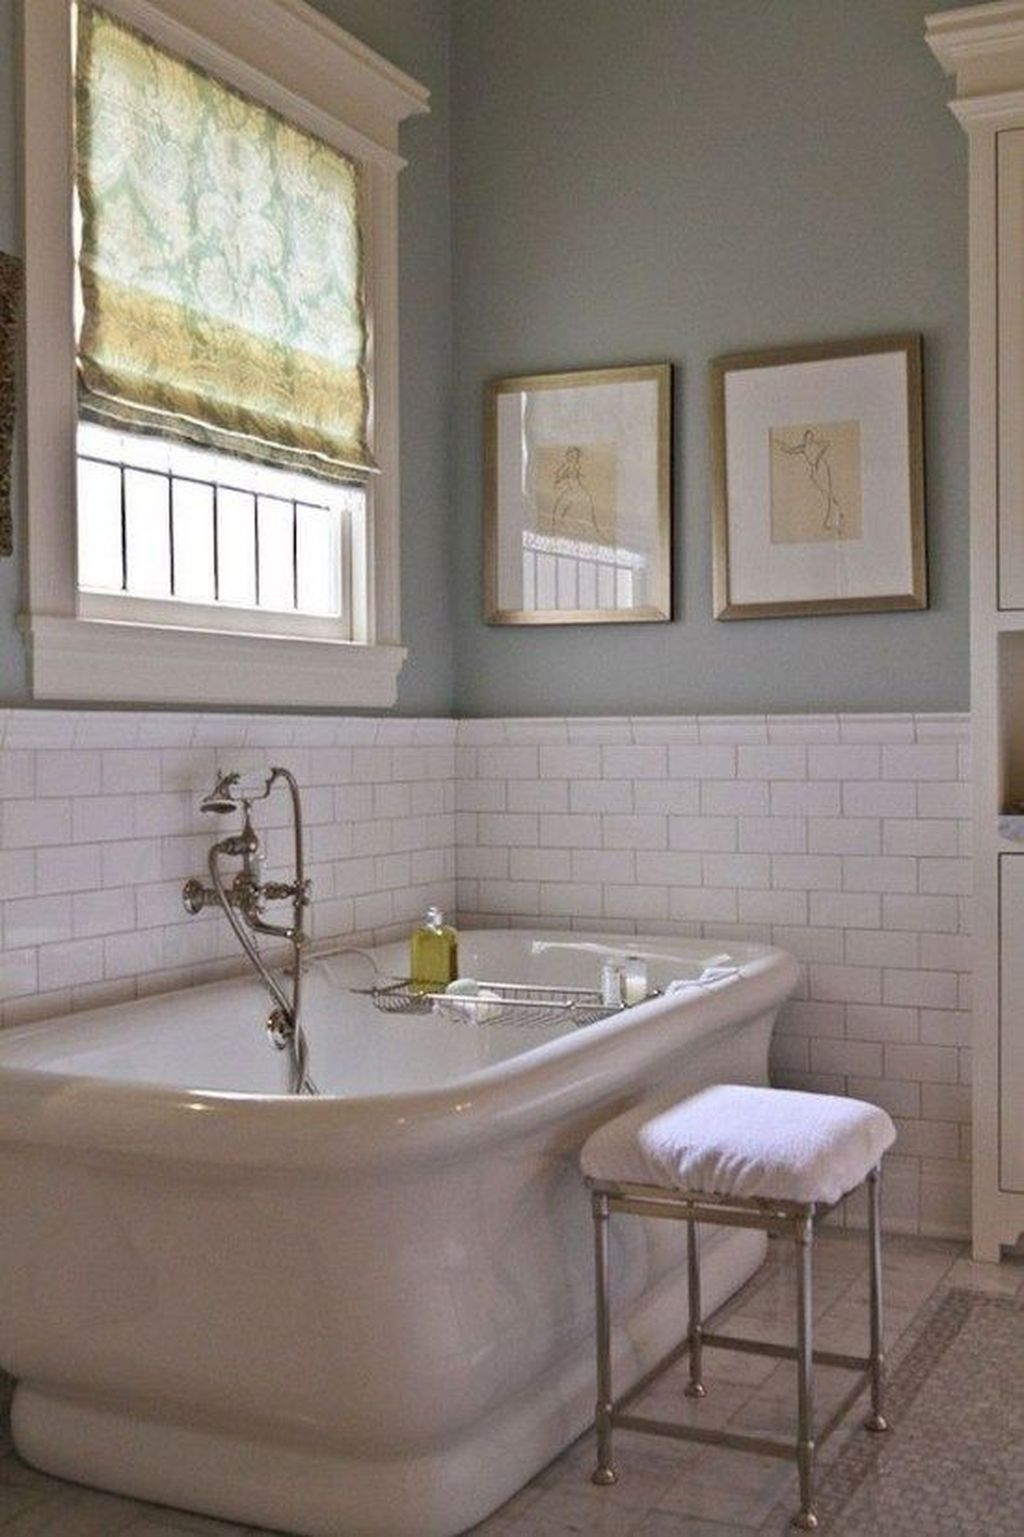 40 Best Fixer Upper Bathrooms Ideas That You Have To Know Bathroom Bathroomdecor Bat Small Bathroom Renovations Fixer Upper Bathroom Rustic Master Bathroom